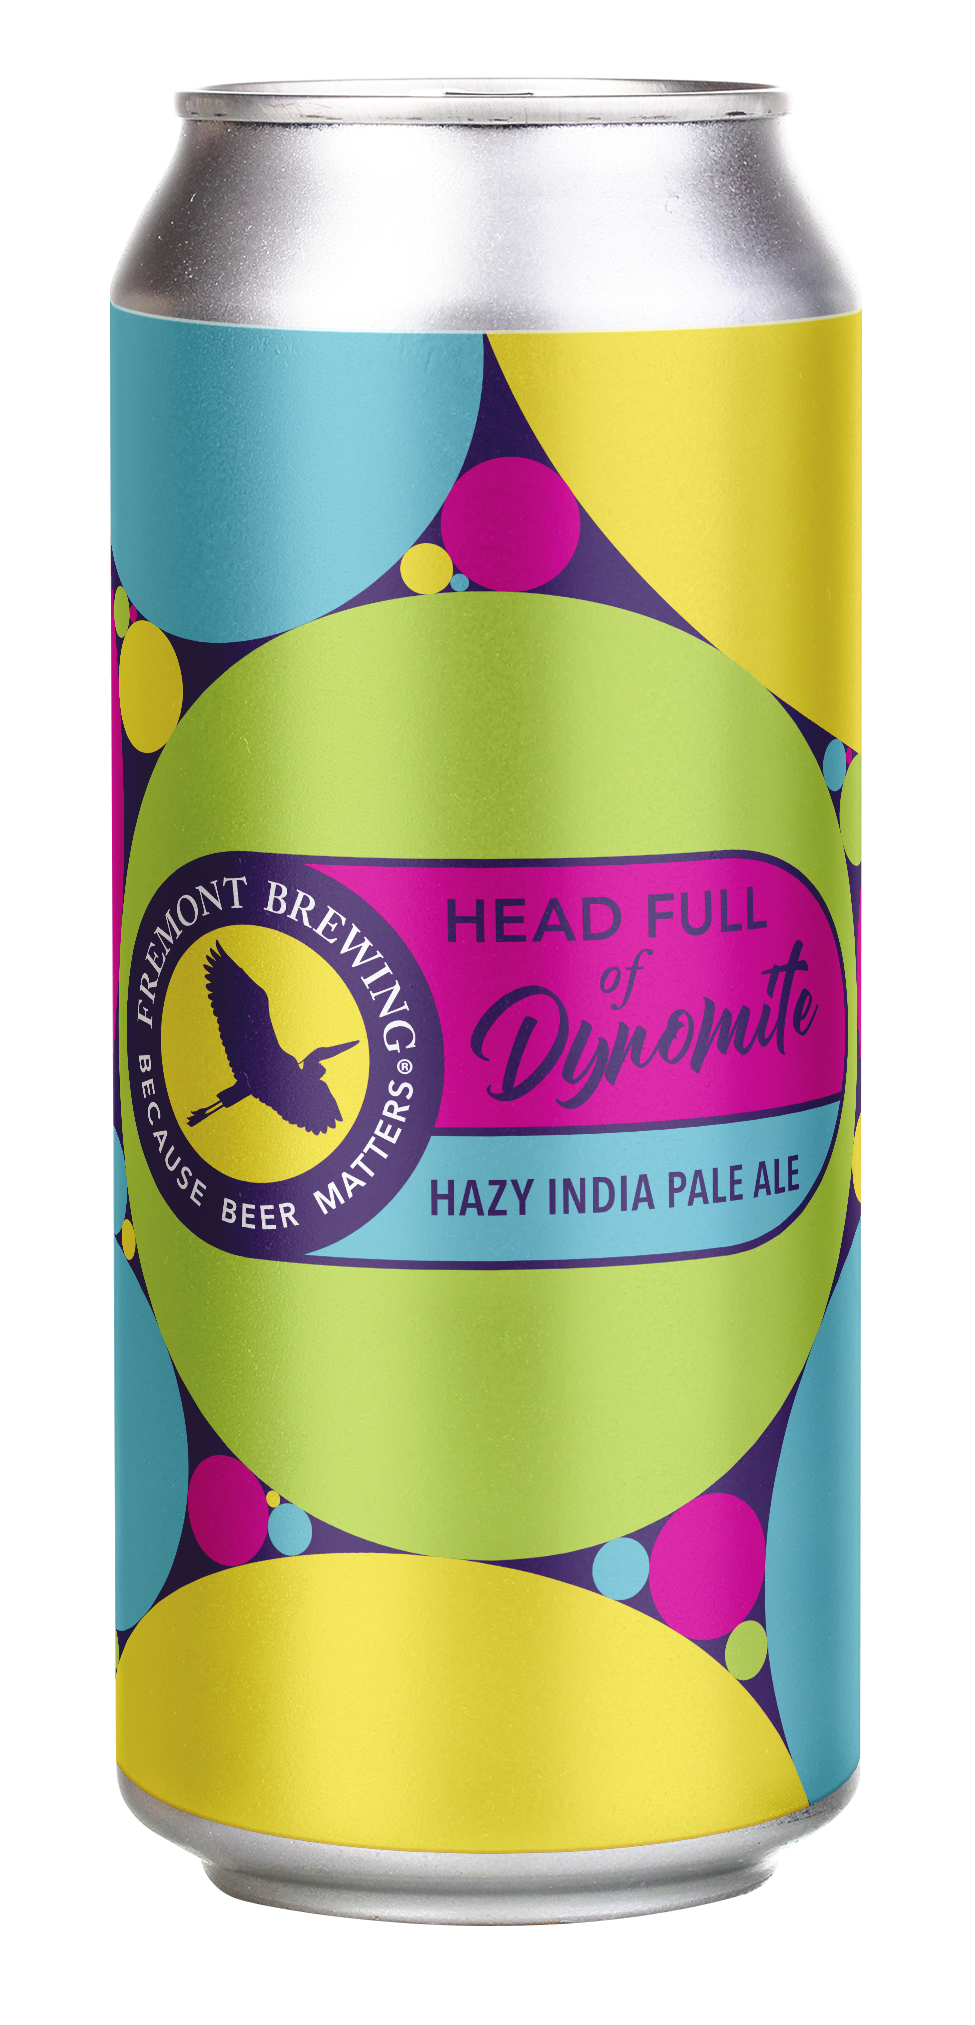 Fremont-Head-Full-of-Dynomite-v3-16oz-can.png